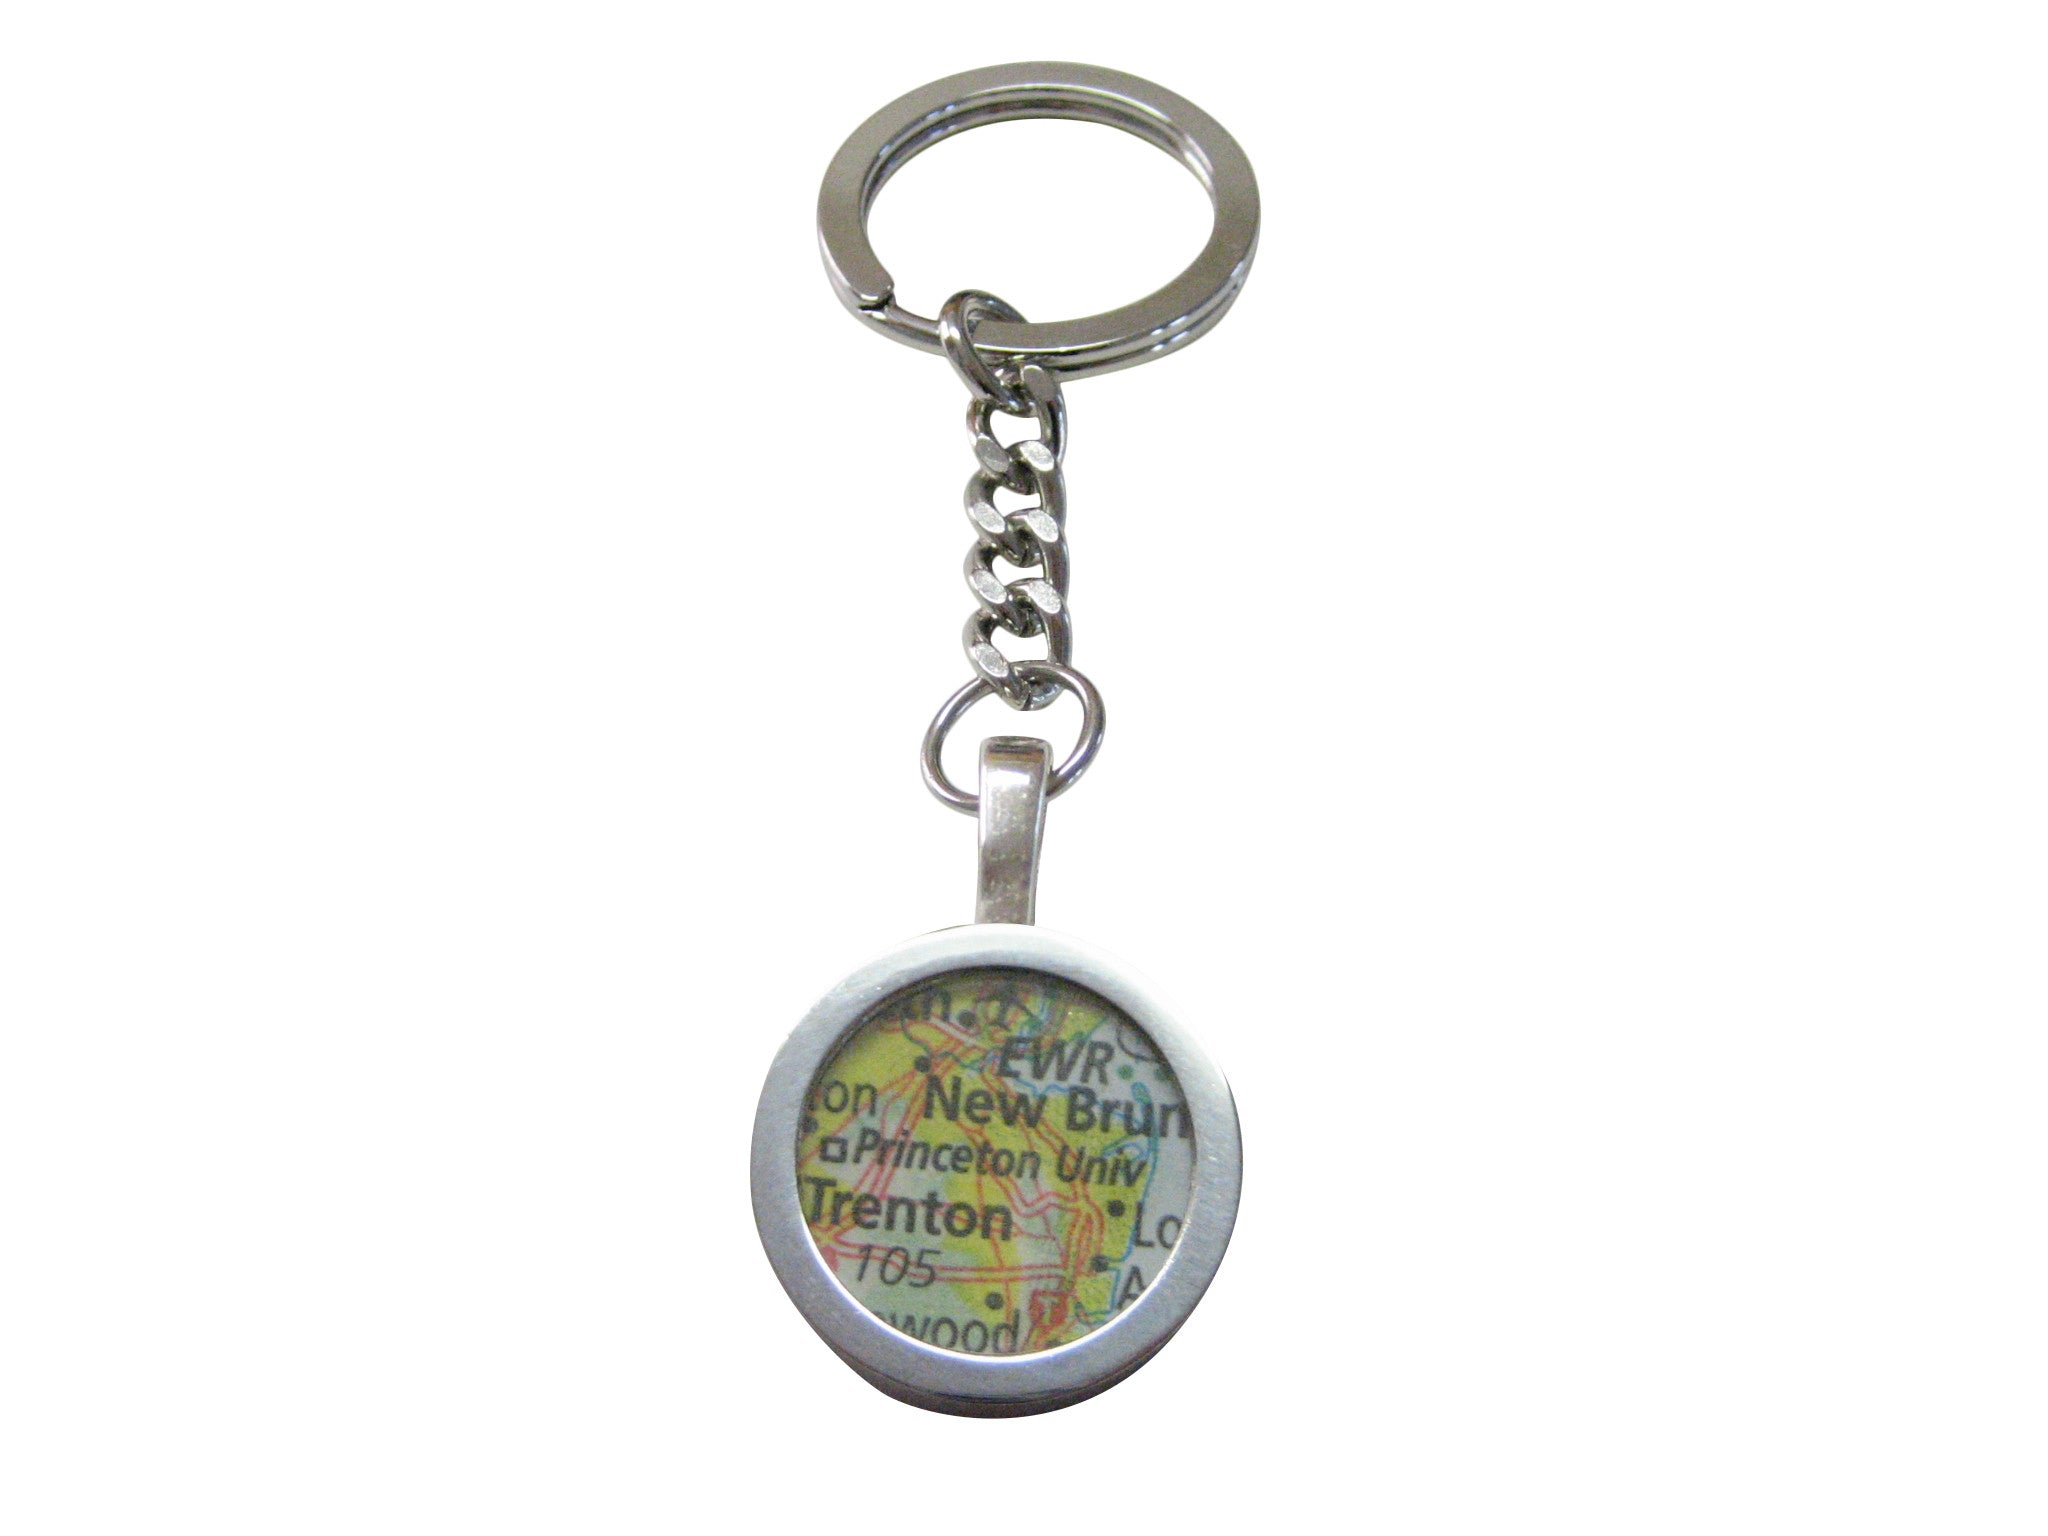 Princeton University Map Pendant Keychain